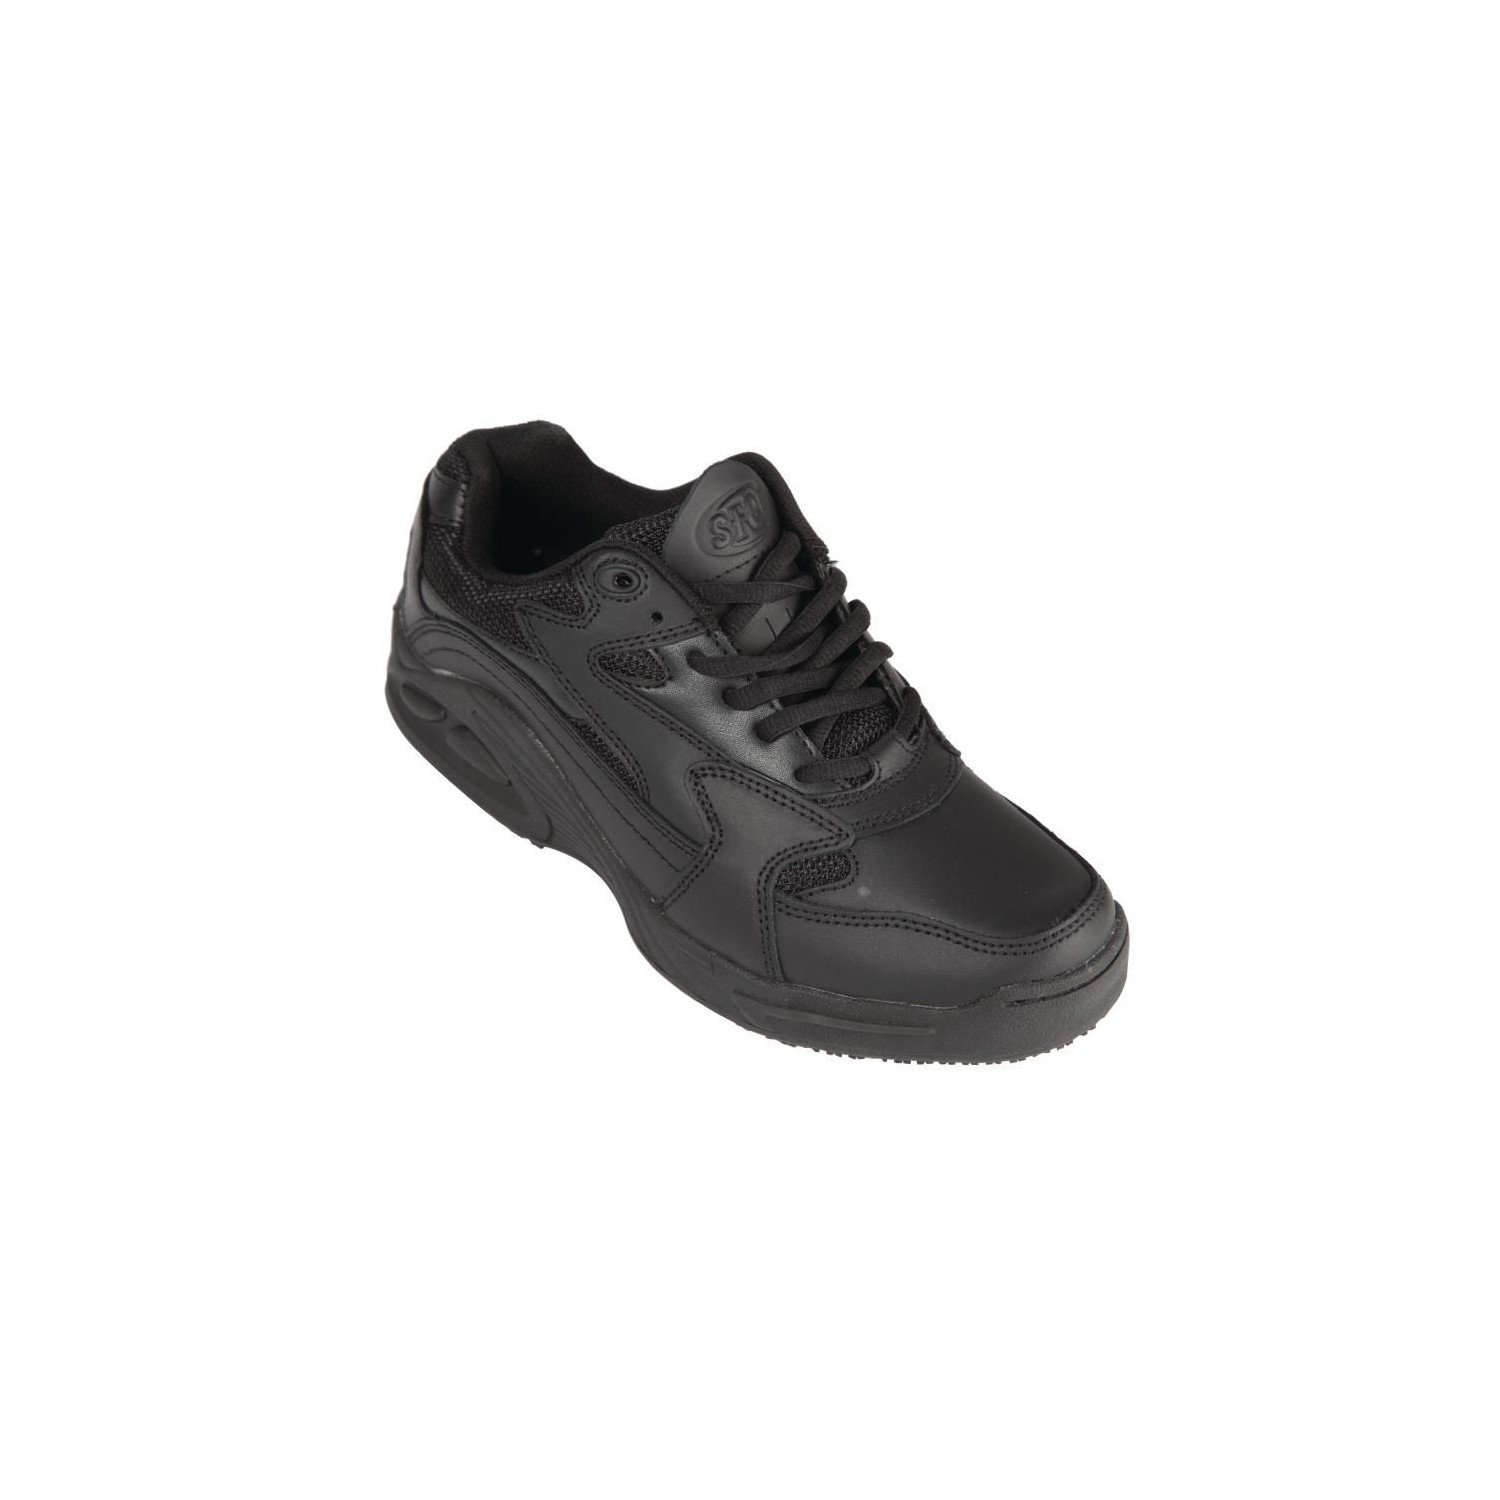 Shoes For Crews Ladies Stay Grounded Leather Trainer - Size 41 SHOES FOR CREWS Nisbets Vêtements